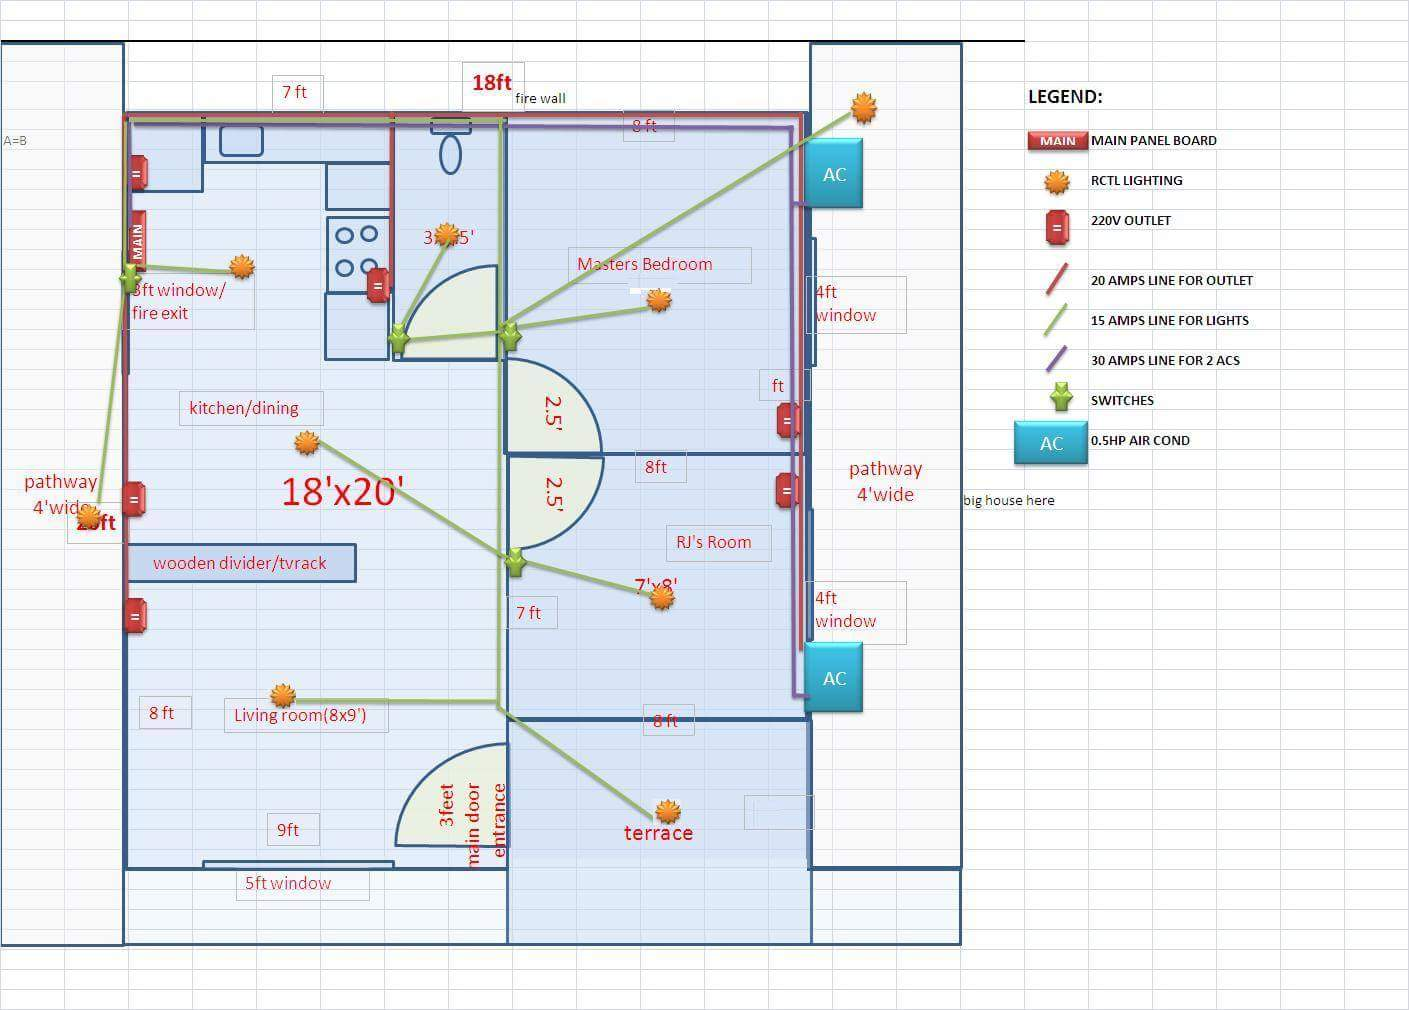 house wiring diagram philippines wiring diagram option house wiring diagram in philippines [ 1409 x 1010 Pixel ]